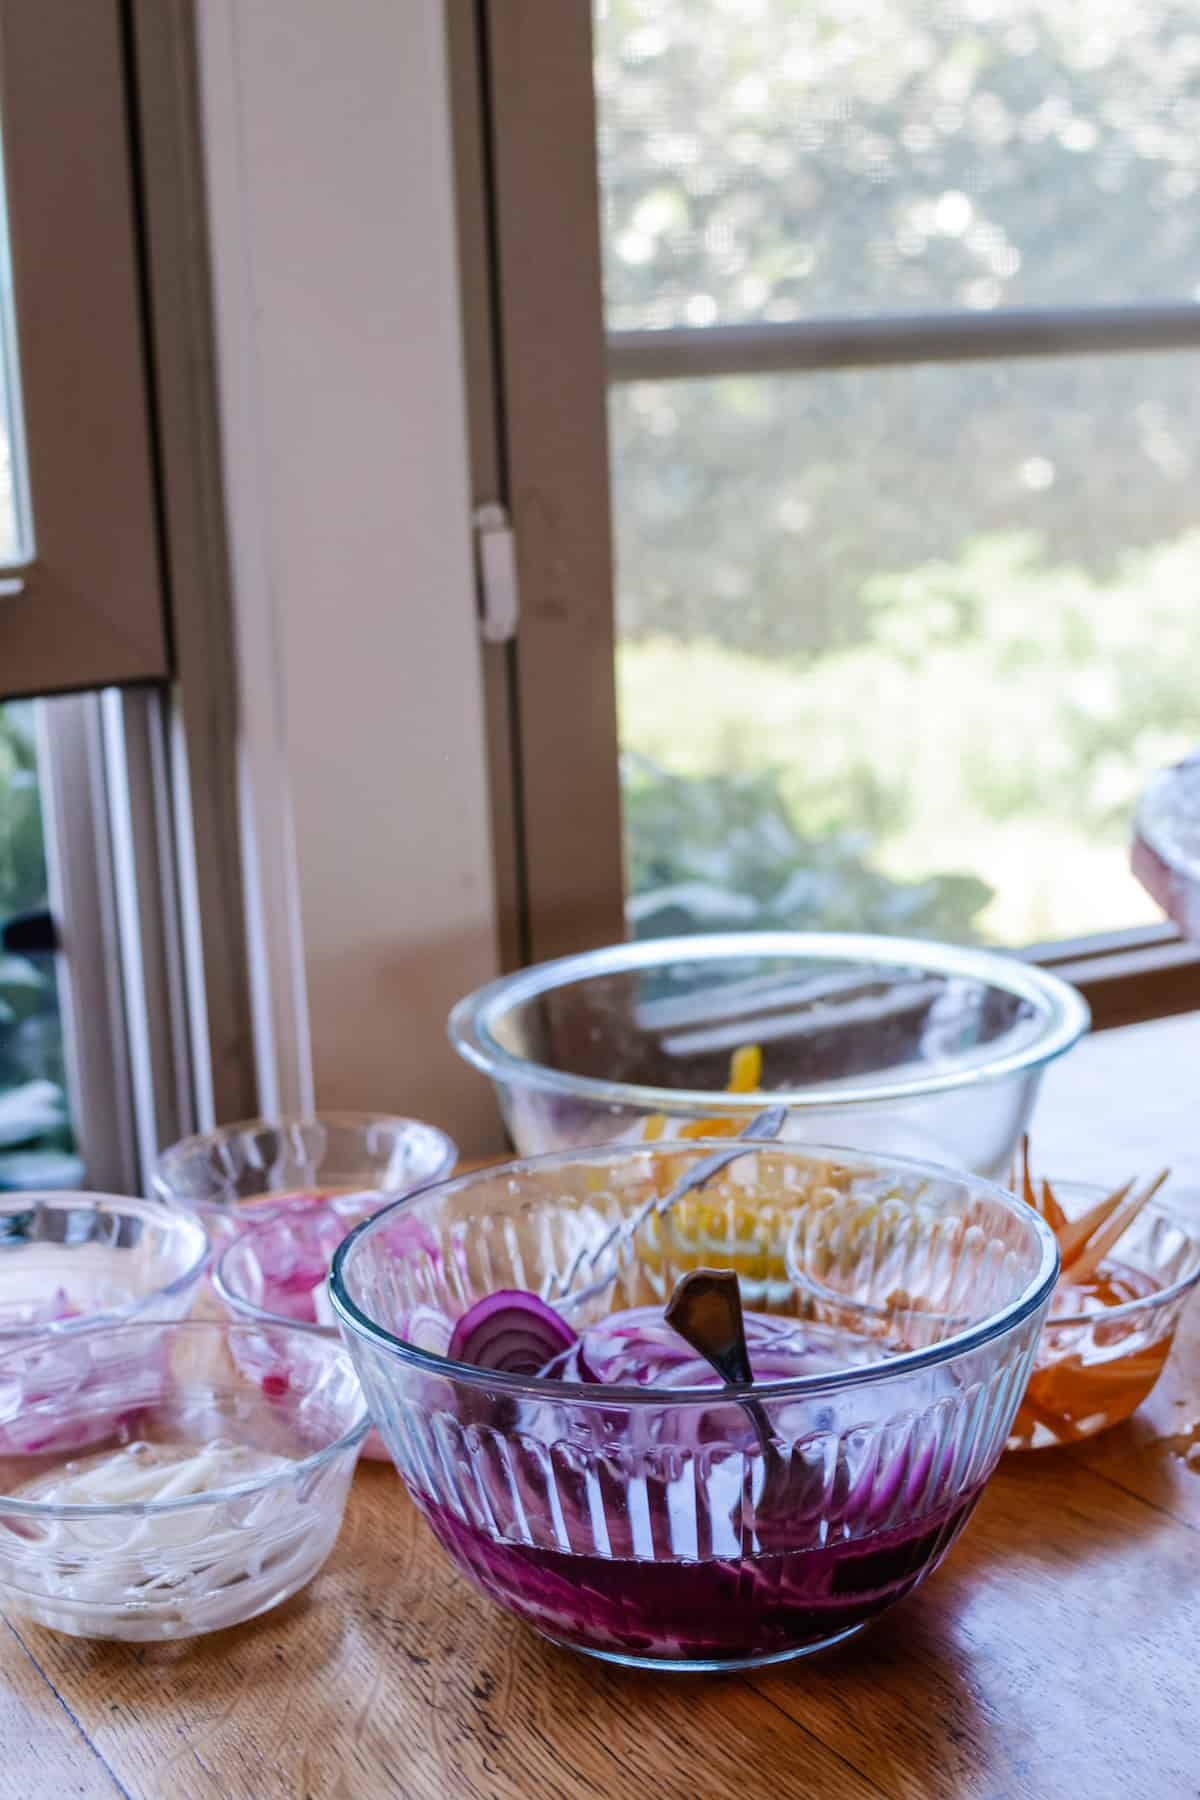 Several glass bowls sitting on a wooden table. The largest one has pickled red onions in it with a fork in the bowl.